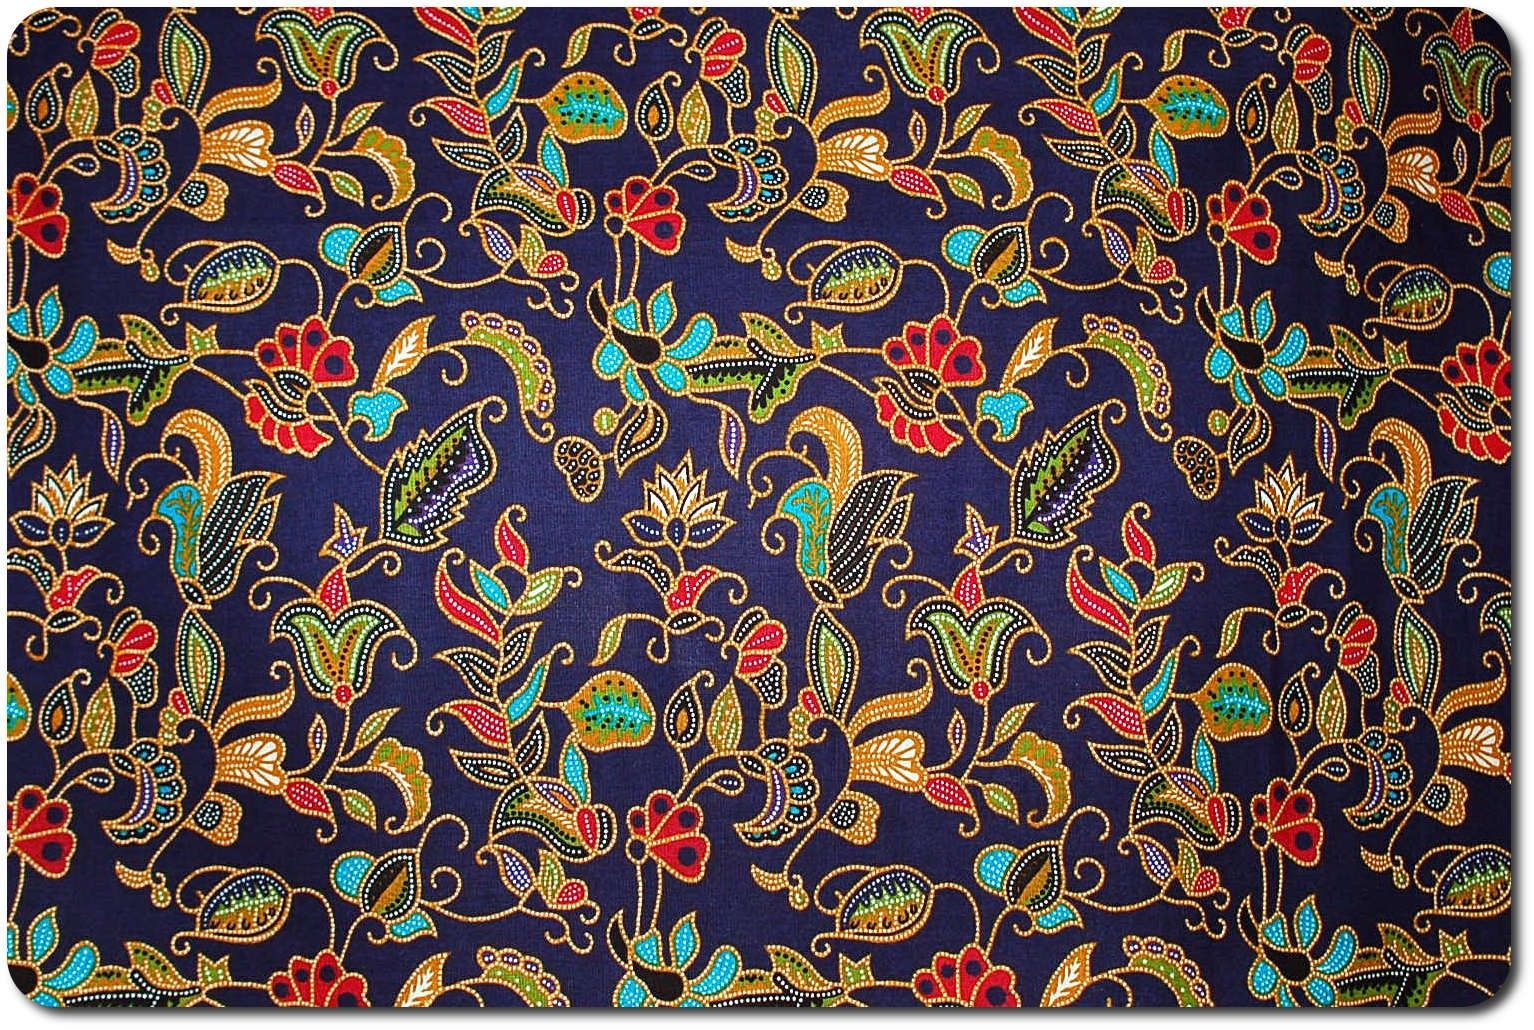 batik and malaysia 3 background of batik batik art divulges throughout india, china, malaysia, indonesia and europe batik first appears in costumes of the aristocrats and royalty but today's it has become.